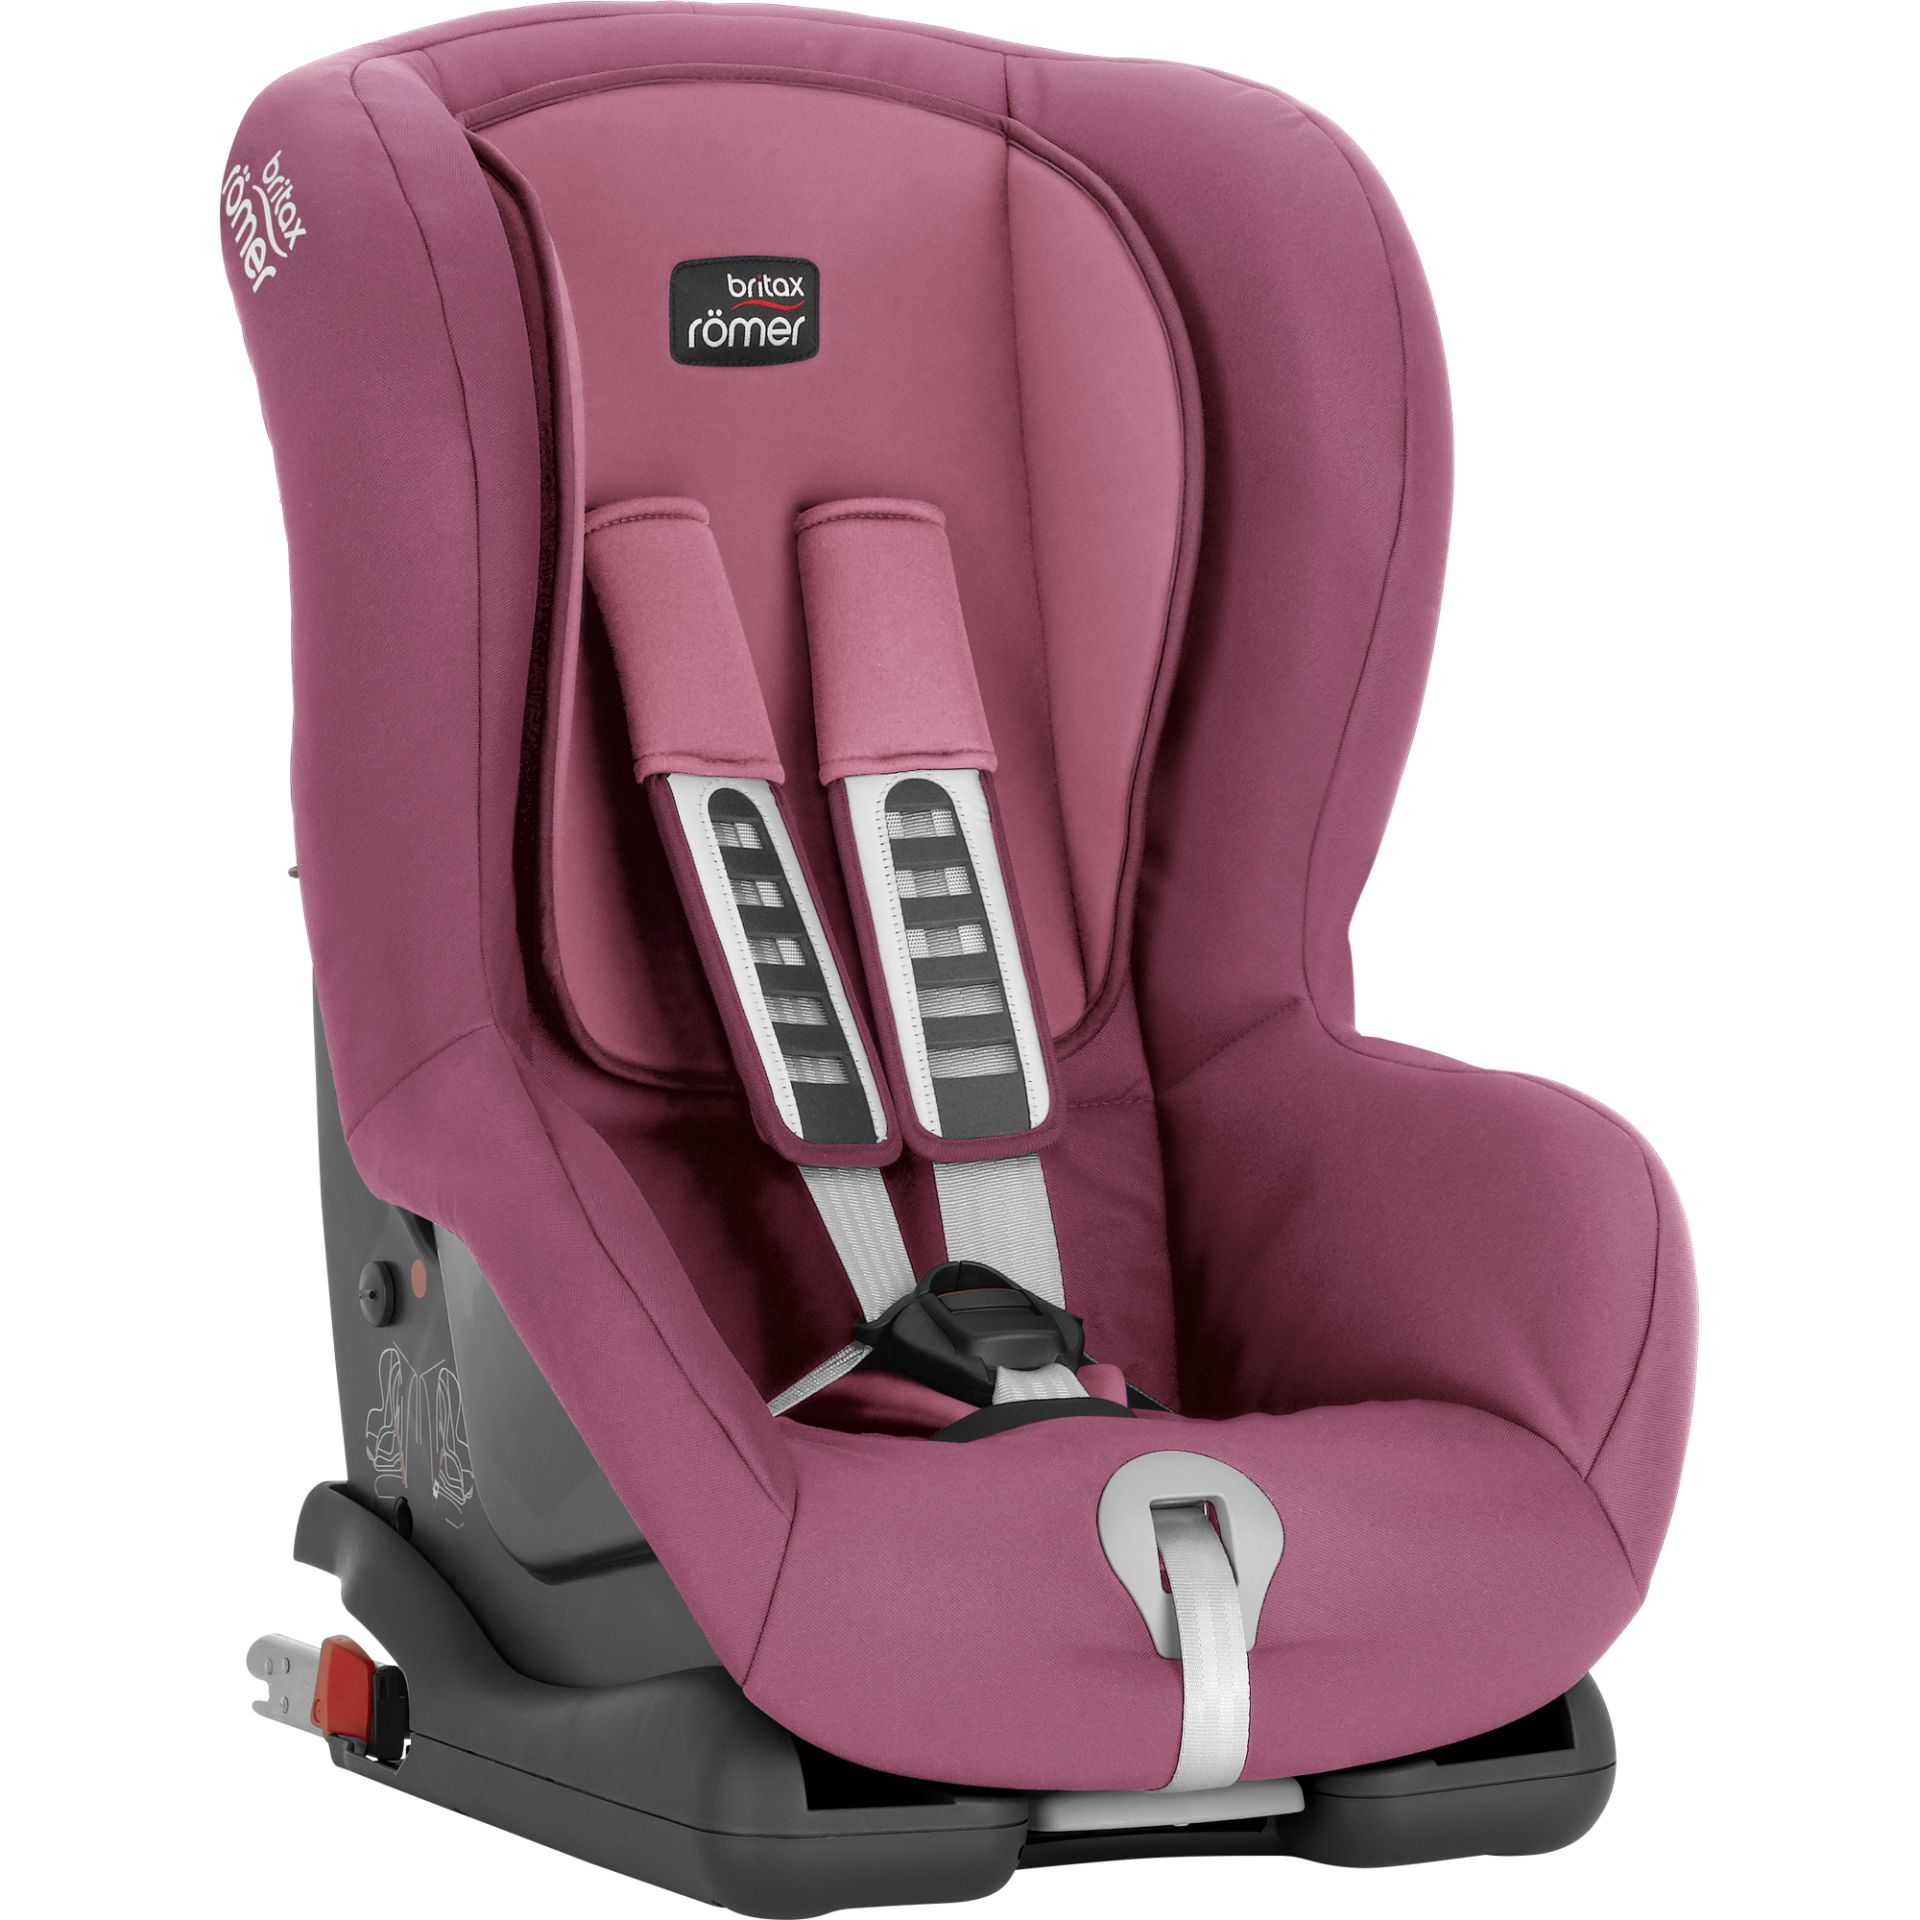 britax r mer car seat duo plus 2019 wine rose buy at. Black Bedroom Furniture Sets. Home Design Ideas